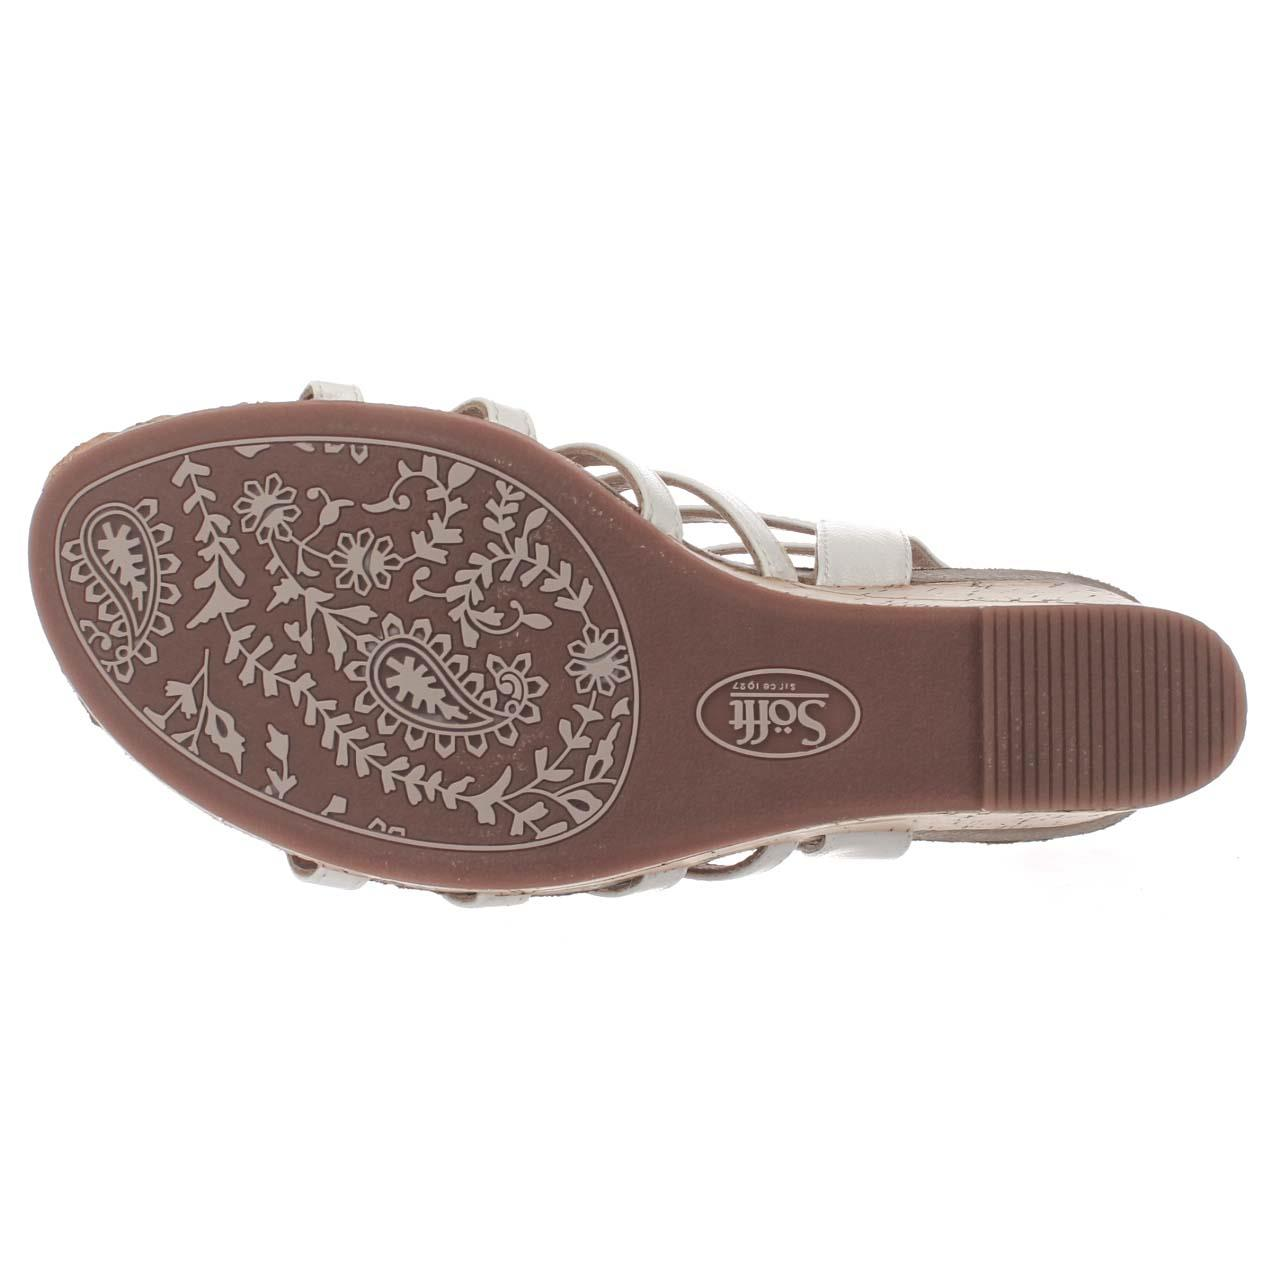 Sofft - Womens - Cassie Economical, stylish, and eye-catching shoes